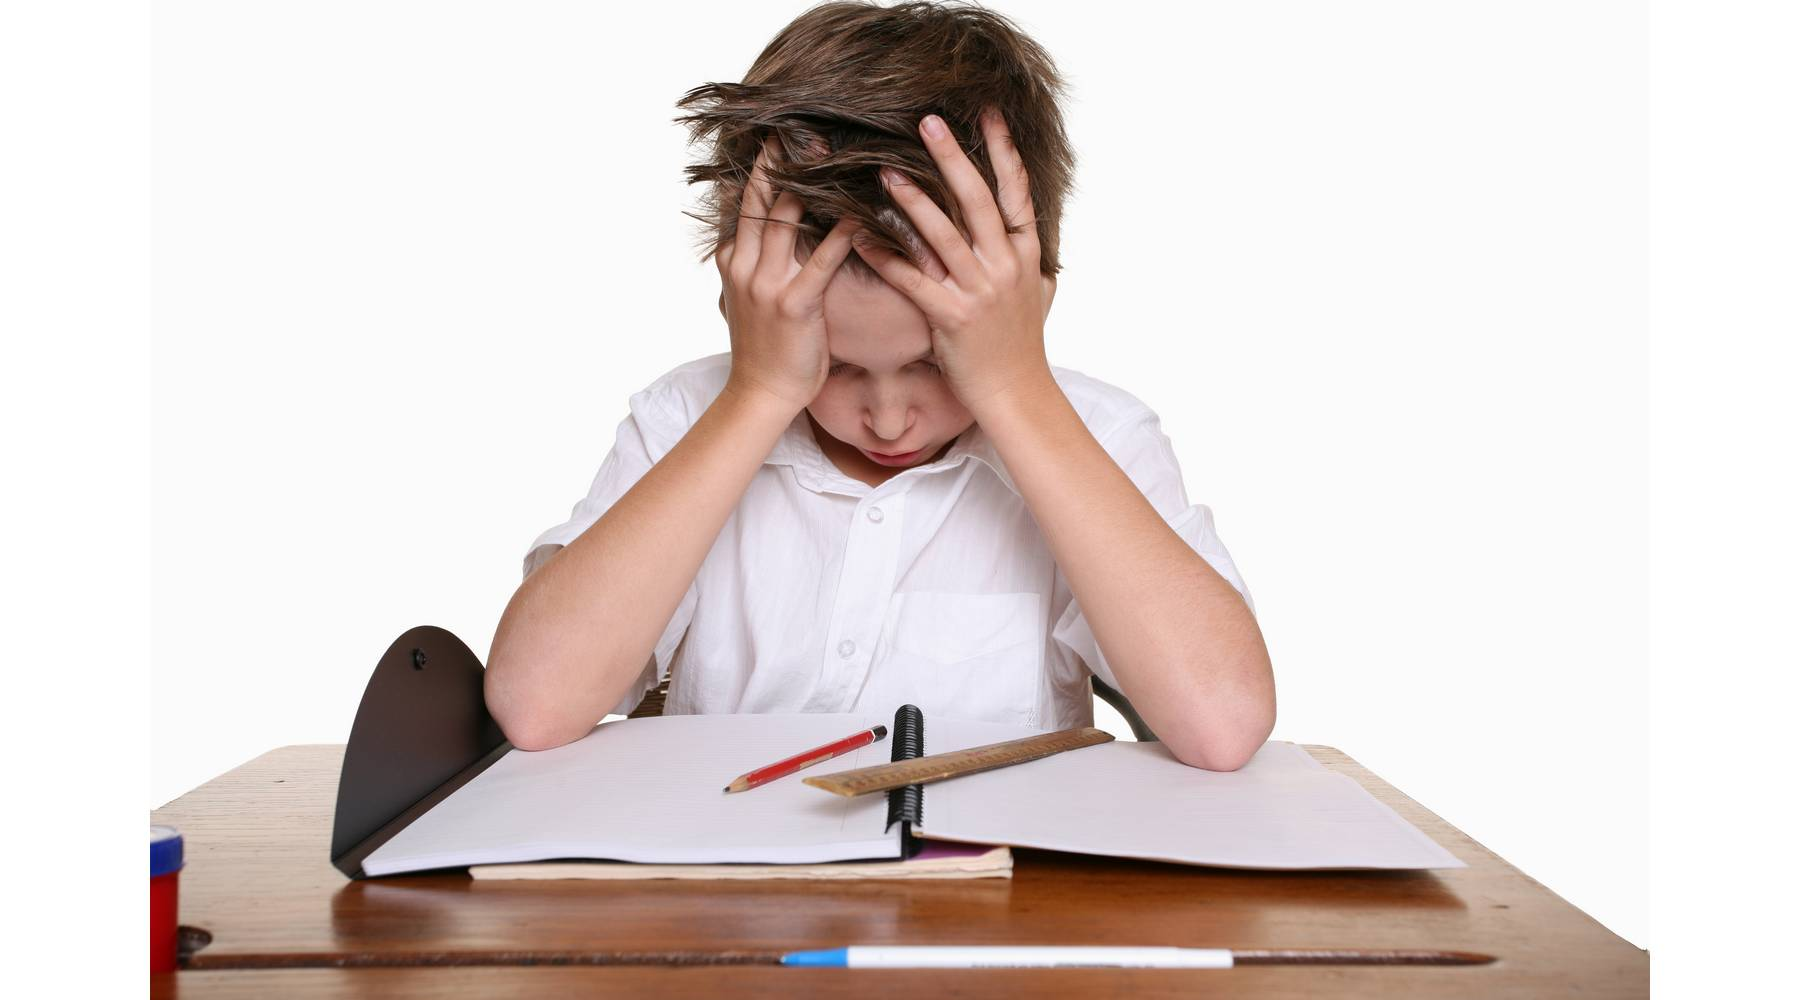 boy at a desk with his head in his hands - frustrated!